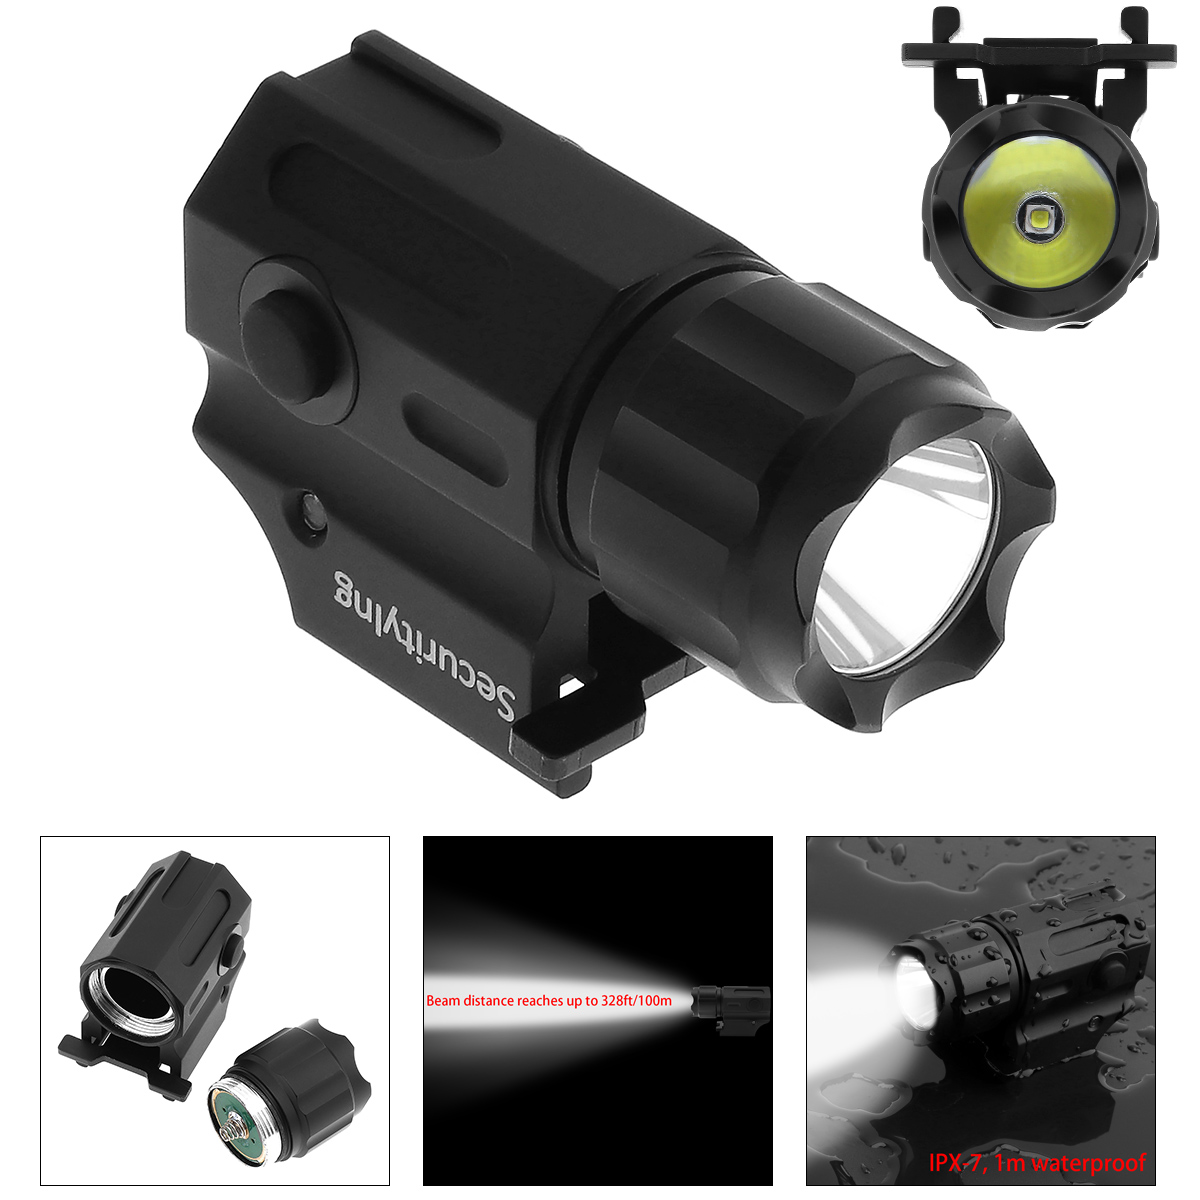 Sale Waterproof G03 XP-G R5 LED 210LM Handheld Military Weapon Lights Pistol Torch Light Tactical Flashlight with 2 Modes Light